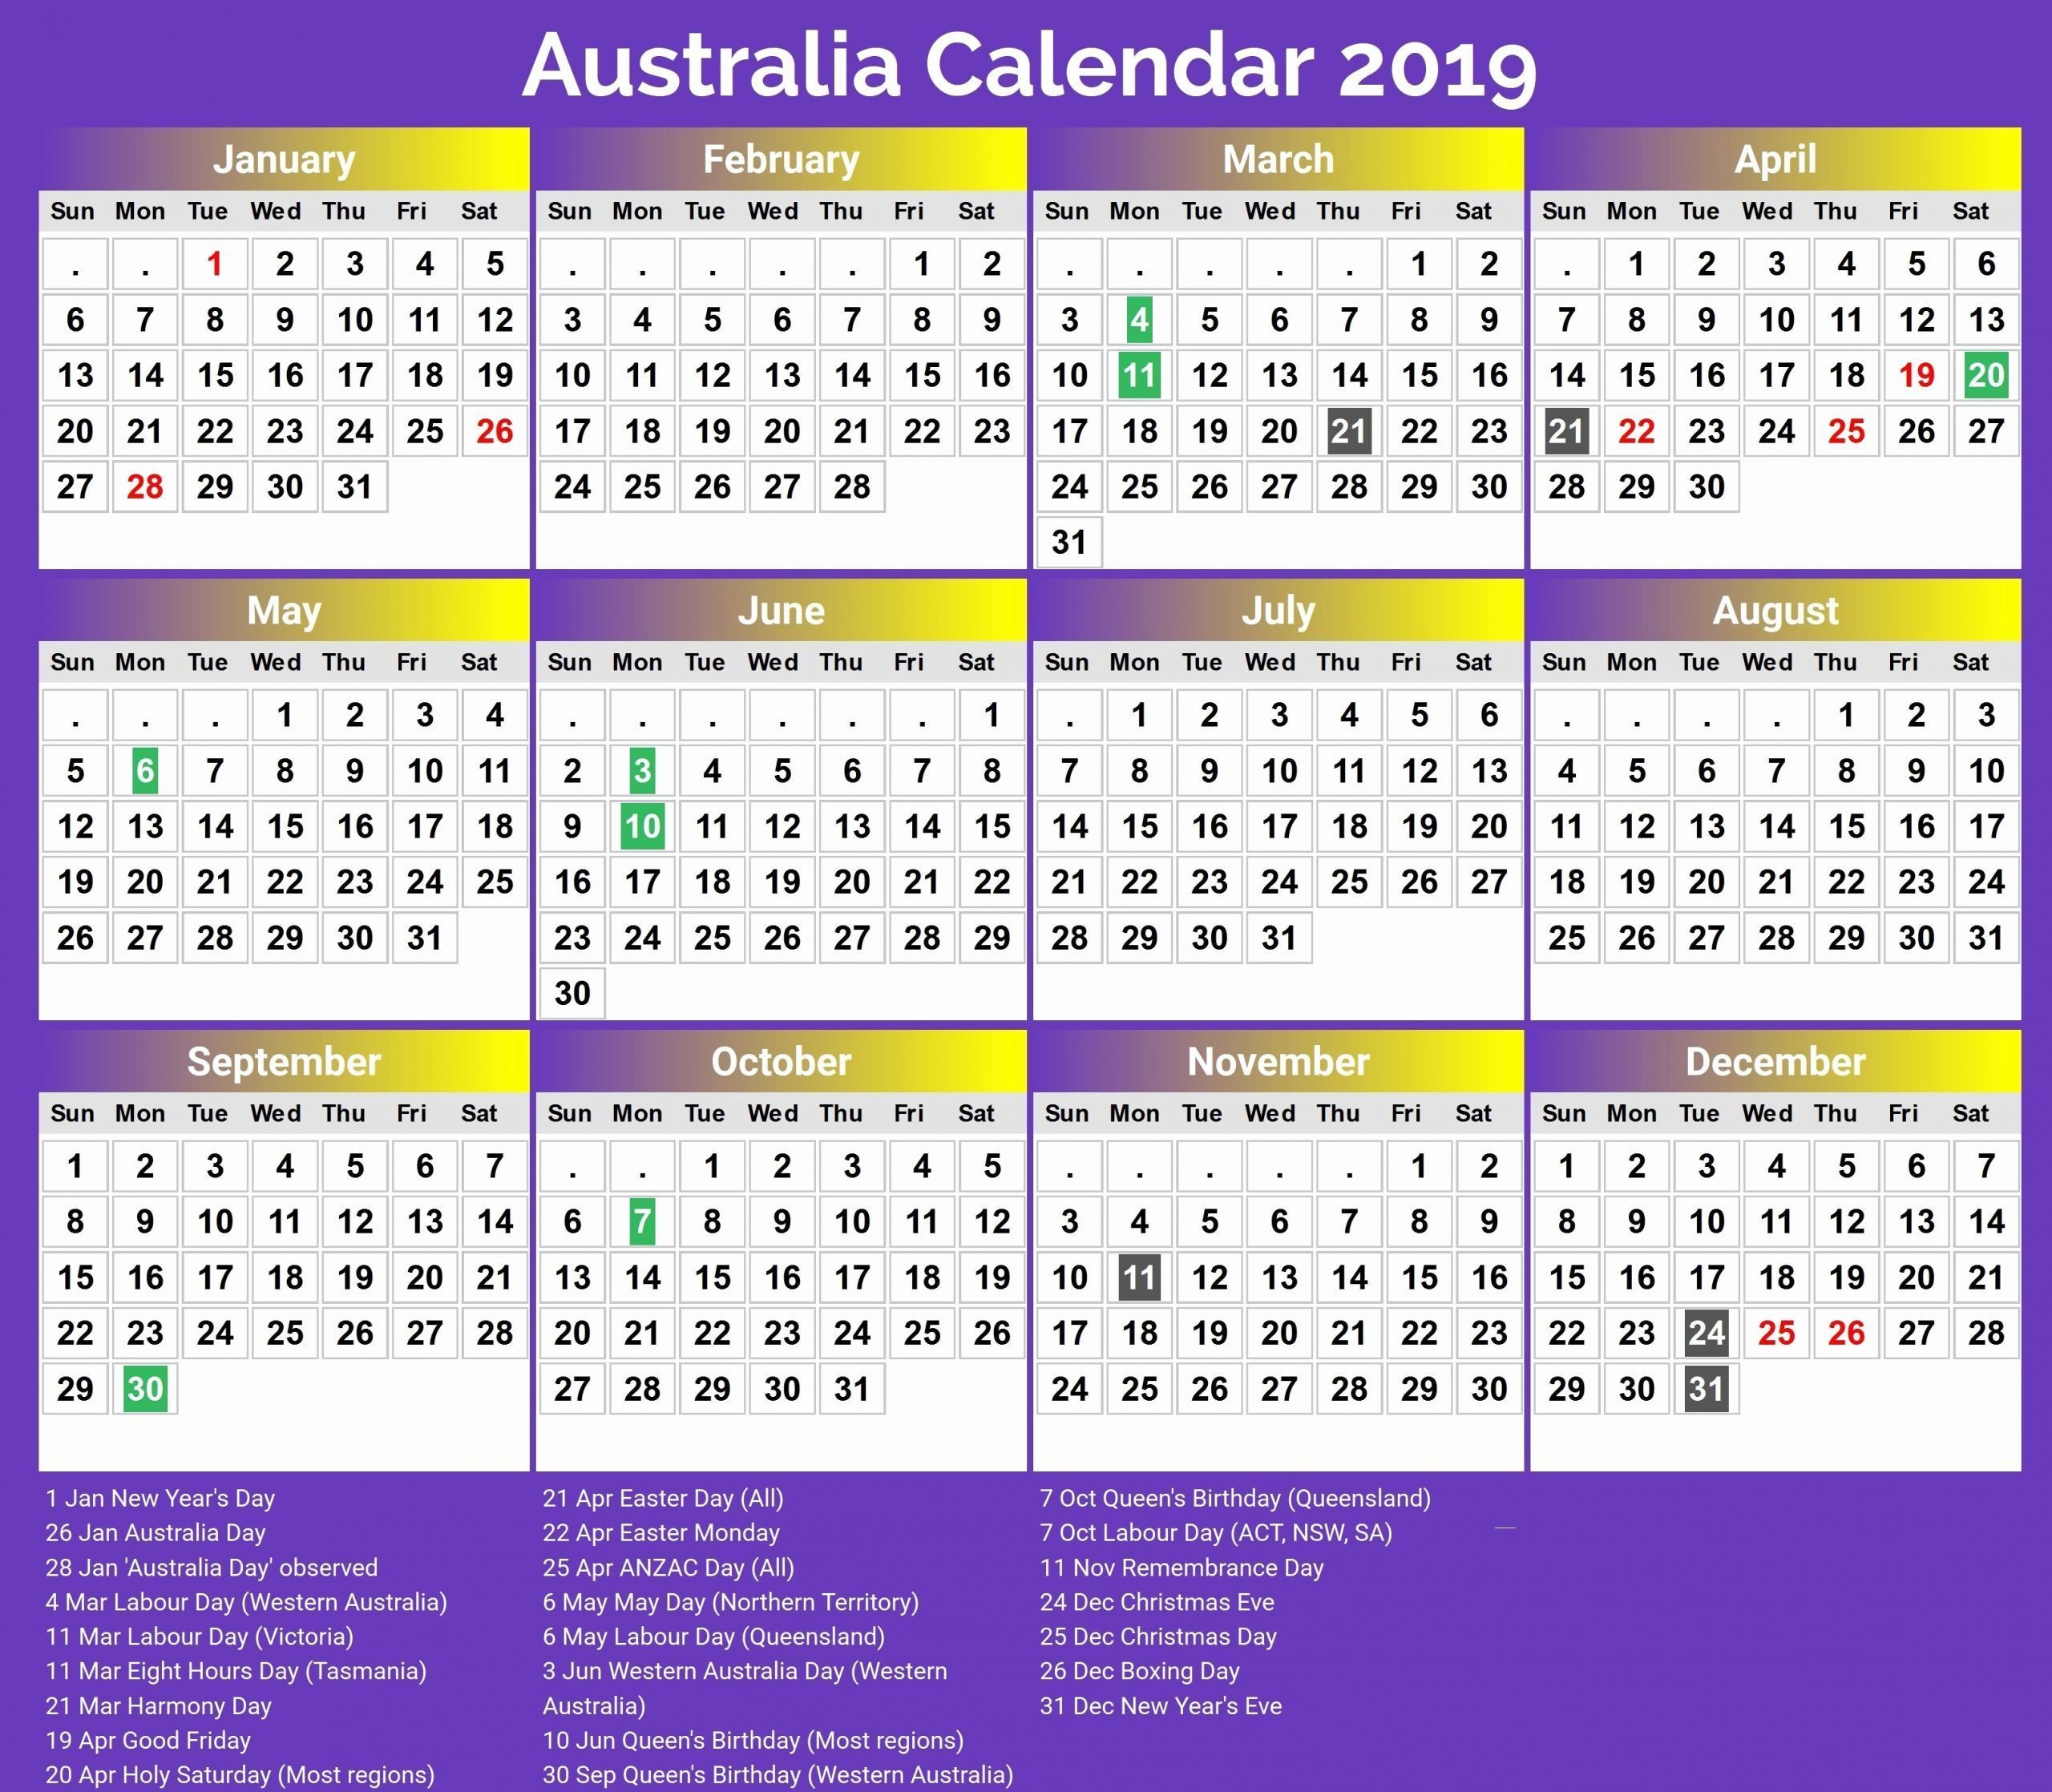 2021 Easter Dates Qld - Th2021